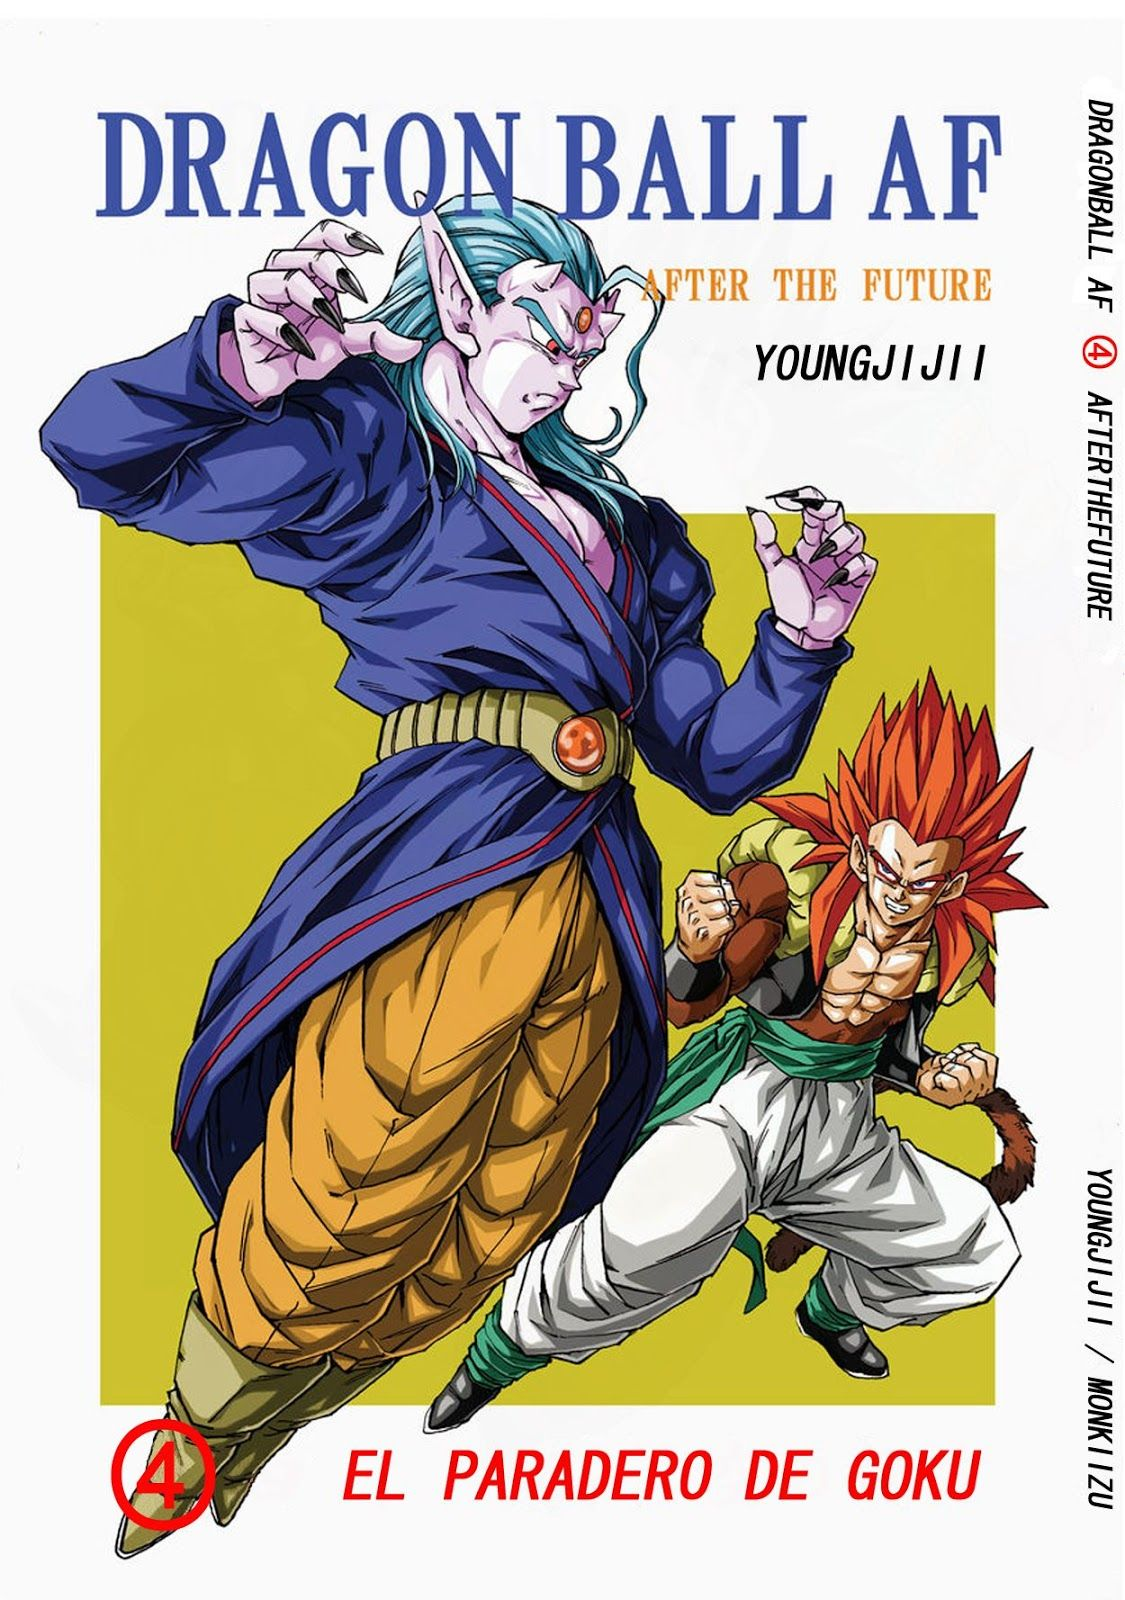 Dragon Ball Af Capítulo 4 Español Dragonballsuper Com Mx Dragon Ball Dragon Ball Artwork Dragon Ball Art